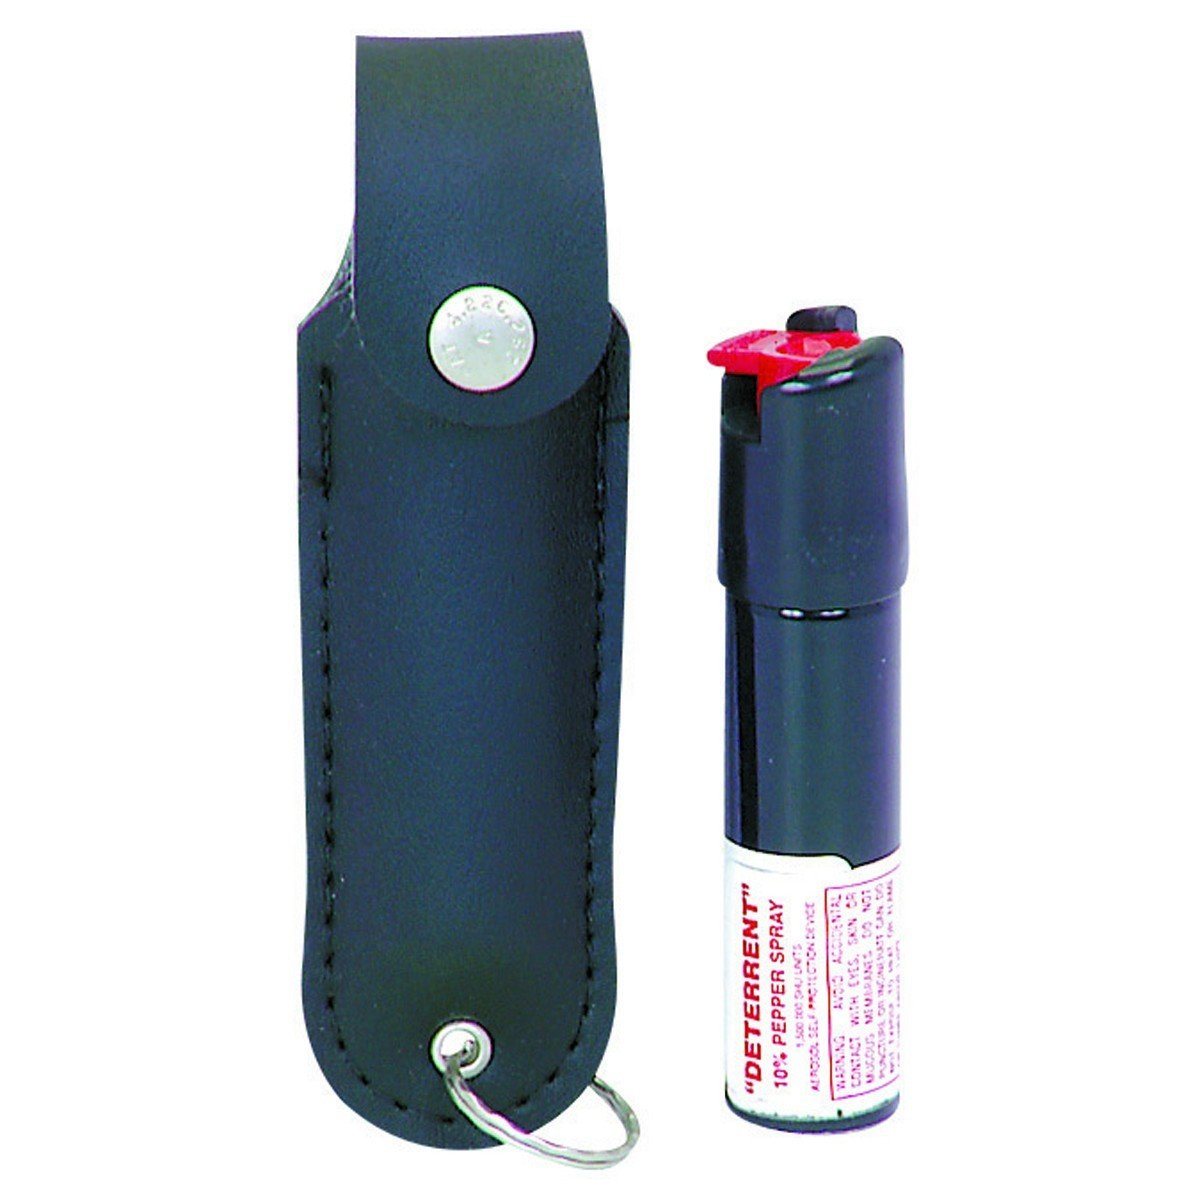 Assault Deterrent OC Red Pepper Spray